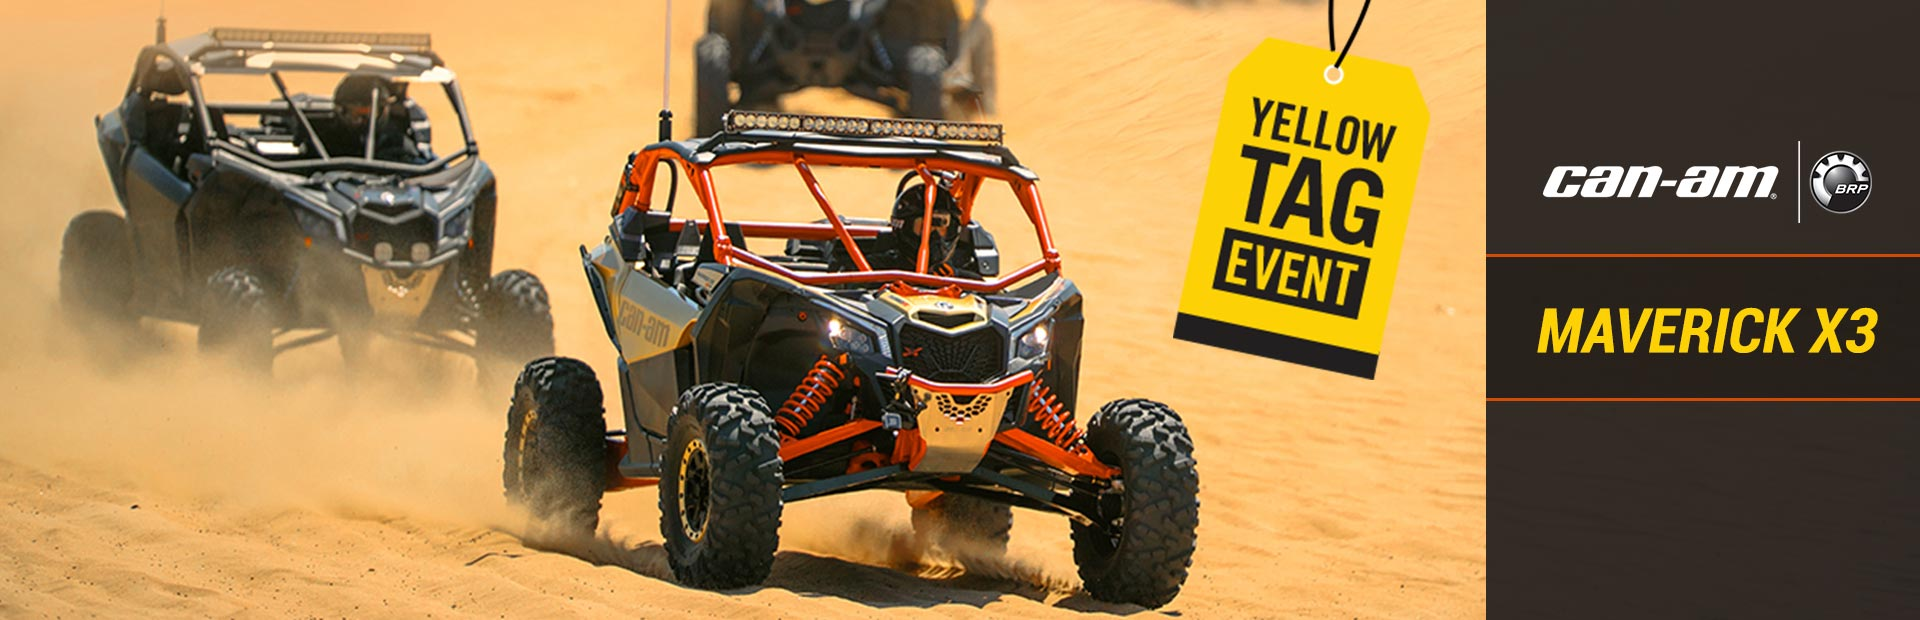 Can-Am: Yellow Tag Event (Maverick X3)